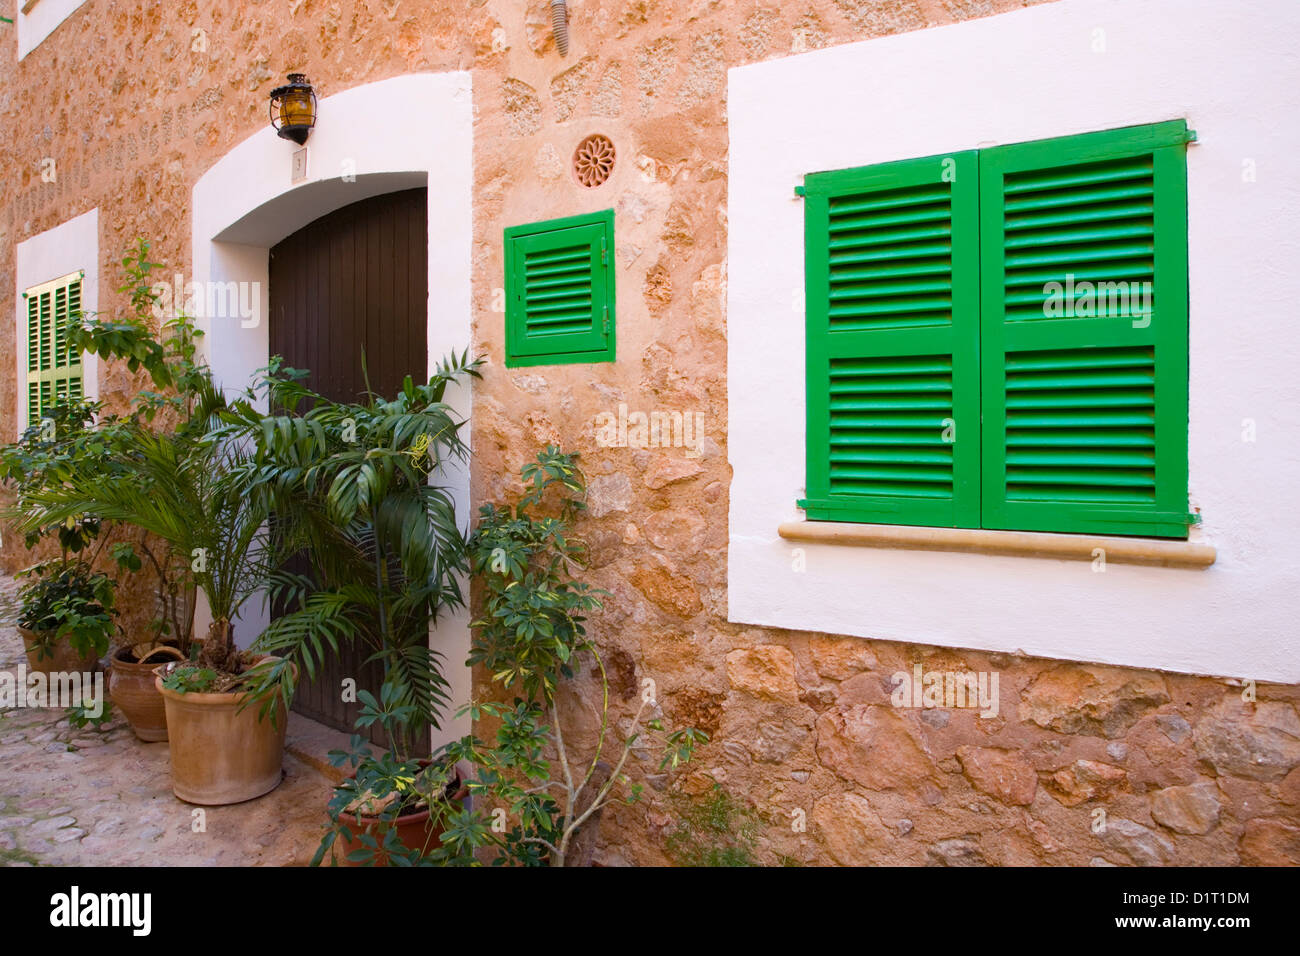 Fornalutx, Mallorca, Balearic Islands, Spain. Typical green-shuttered windows in the heart of the village. Stock Photo